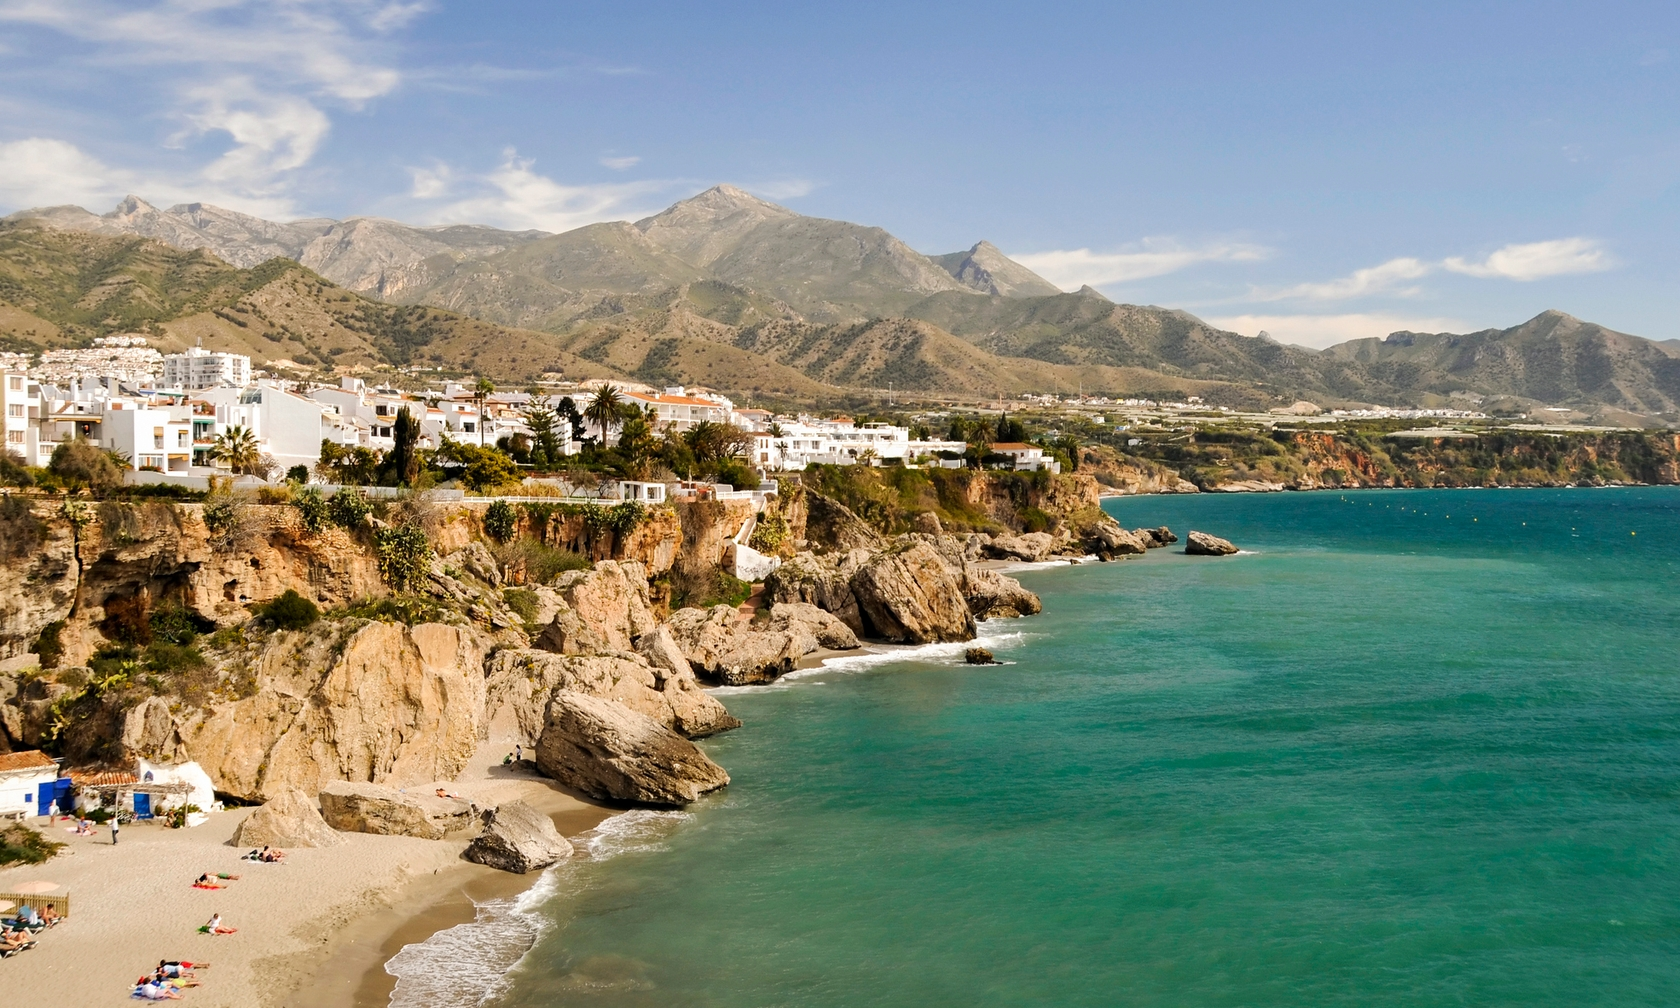 Villa and house rentals in Nerja